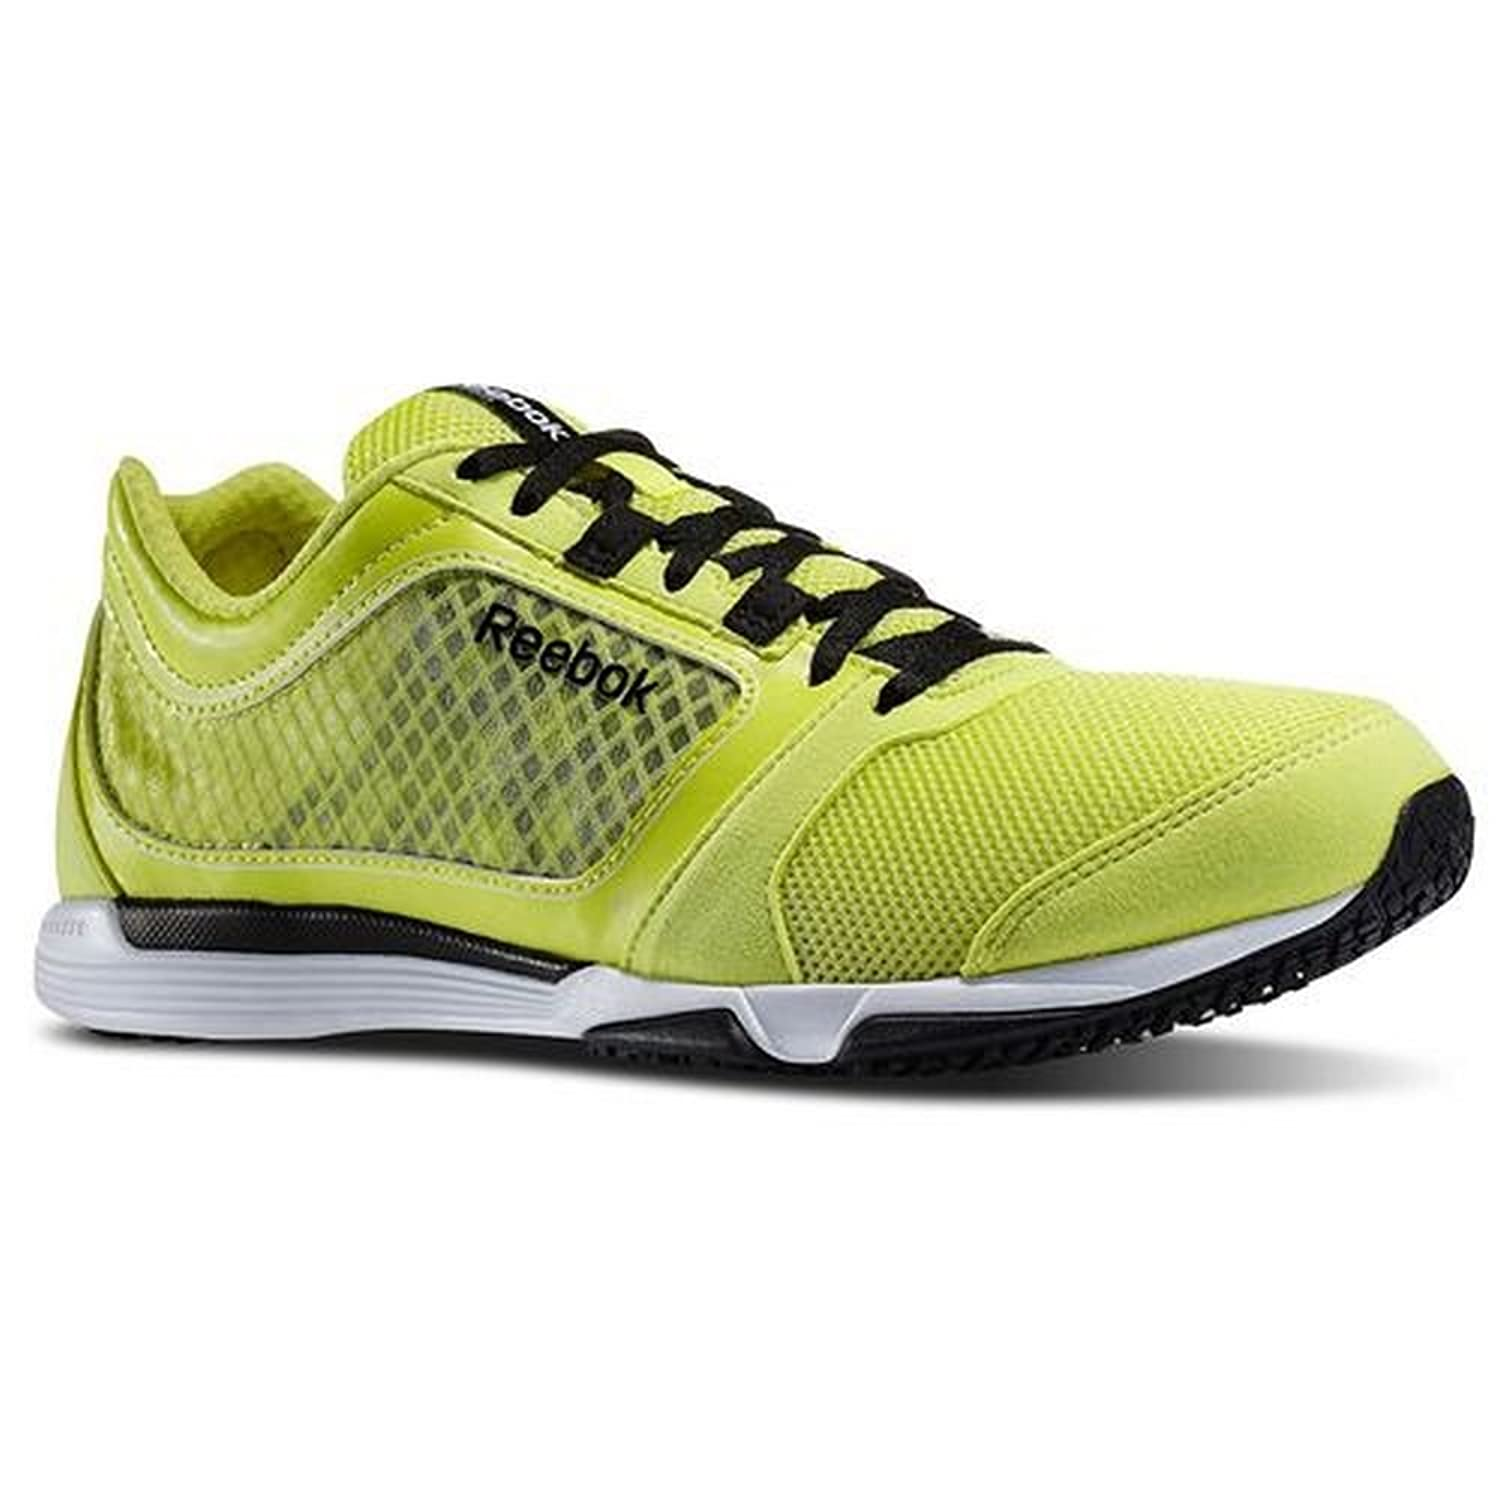 Images for Reebok Mens Sublite Sprint Tr Fitness & Training Shoe in High  Vis Green / Black / Chalk Size 7.5